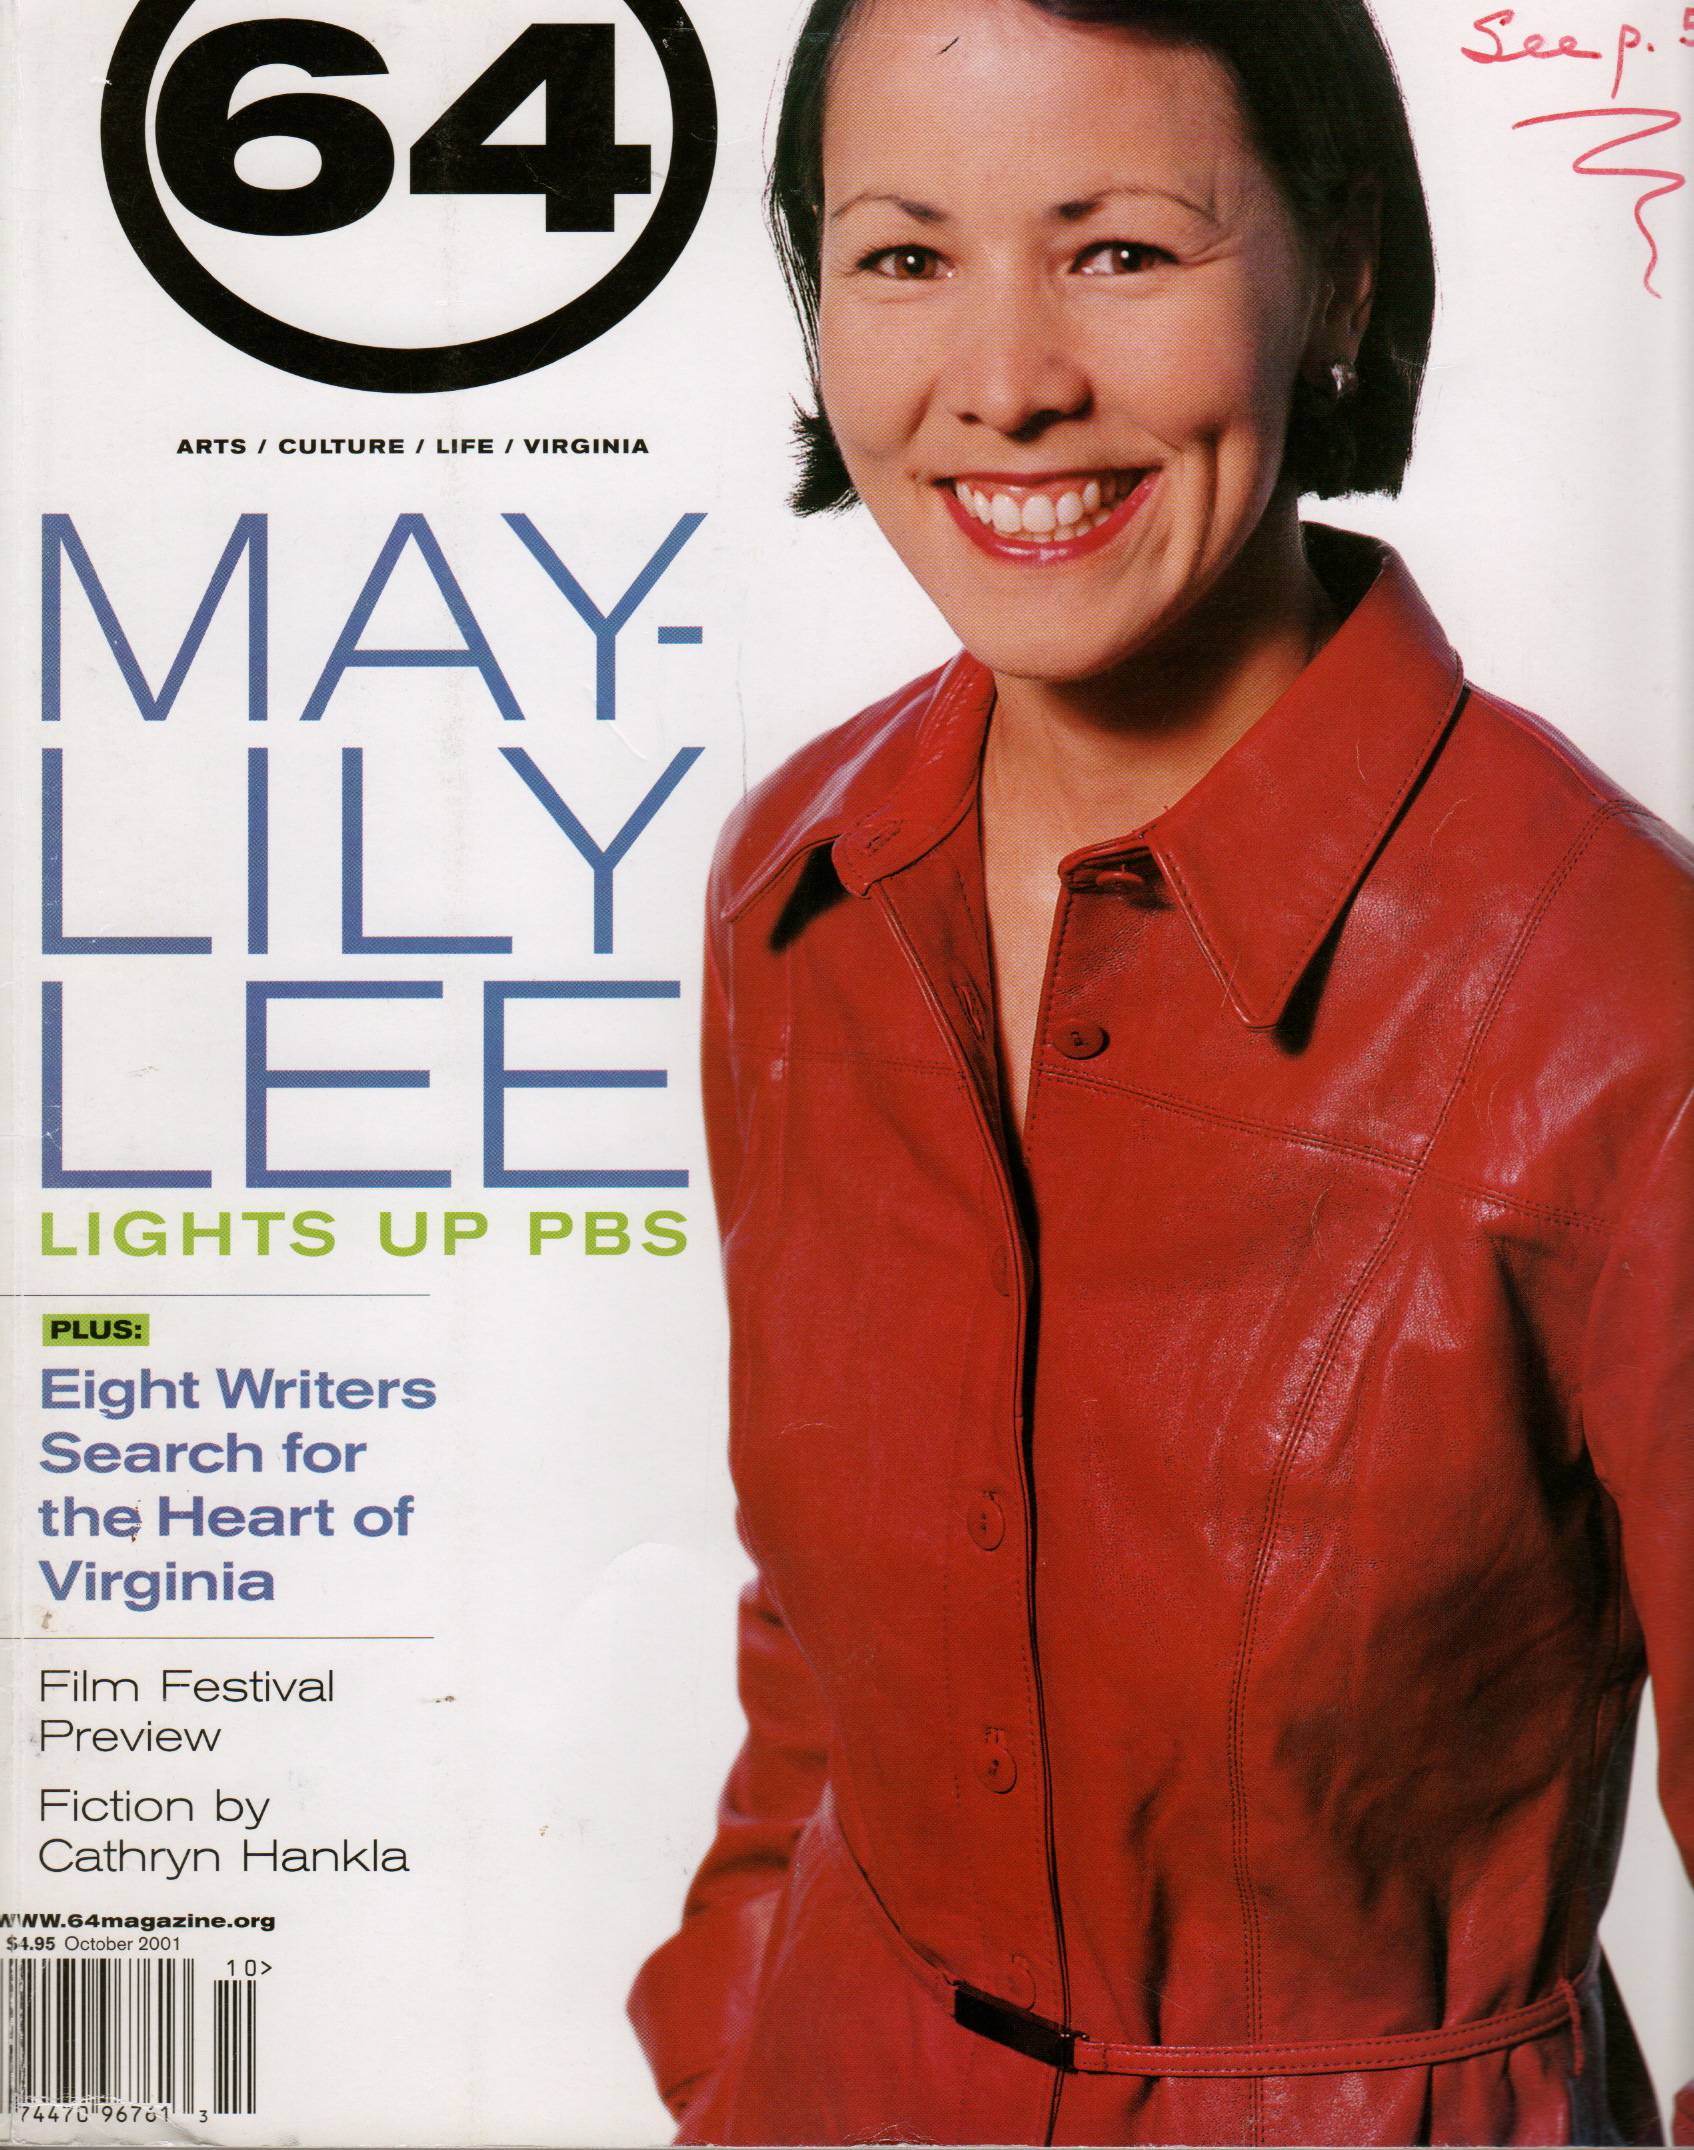 "May-Lily Lee, ""Virginia's Storyteller,"" upon the cover of ""64 Magazine."" October 2001. Scanned image includes her professional photo by Todd Wright."